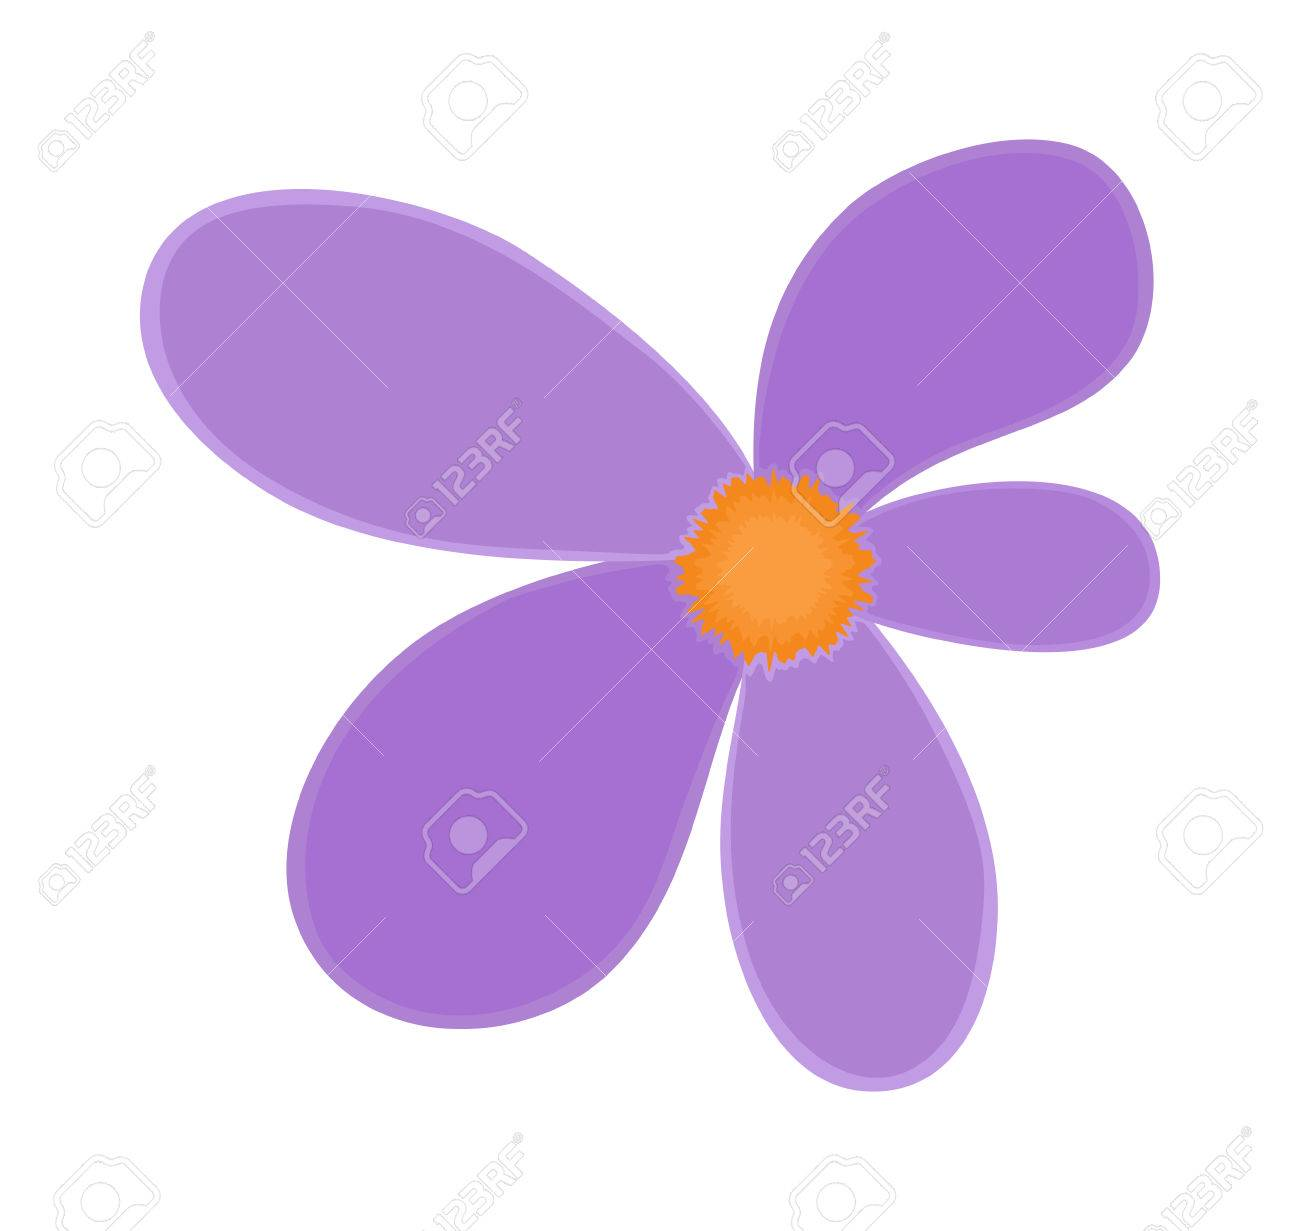 Pink flower drawing art royalty free cliparts vectors and stock pink flower drawing art stock vector 33660632 mightylinksfo